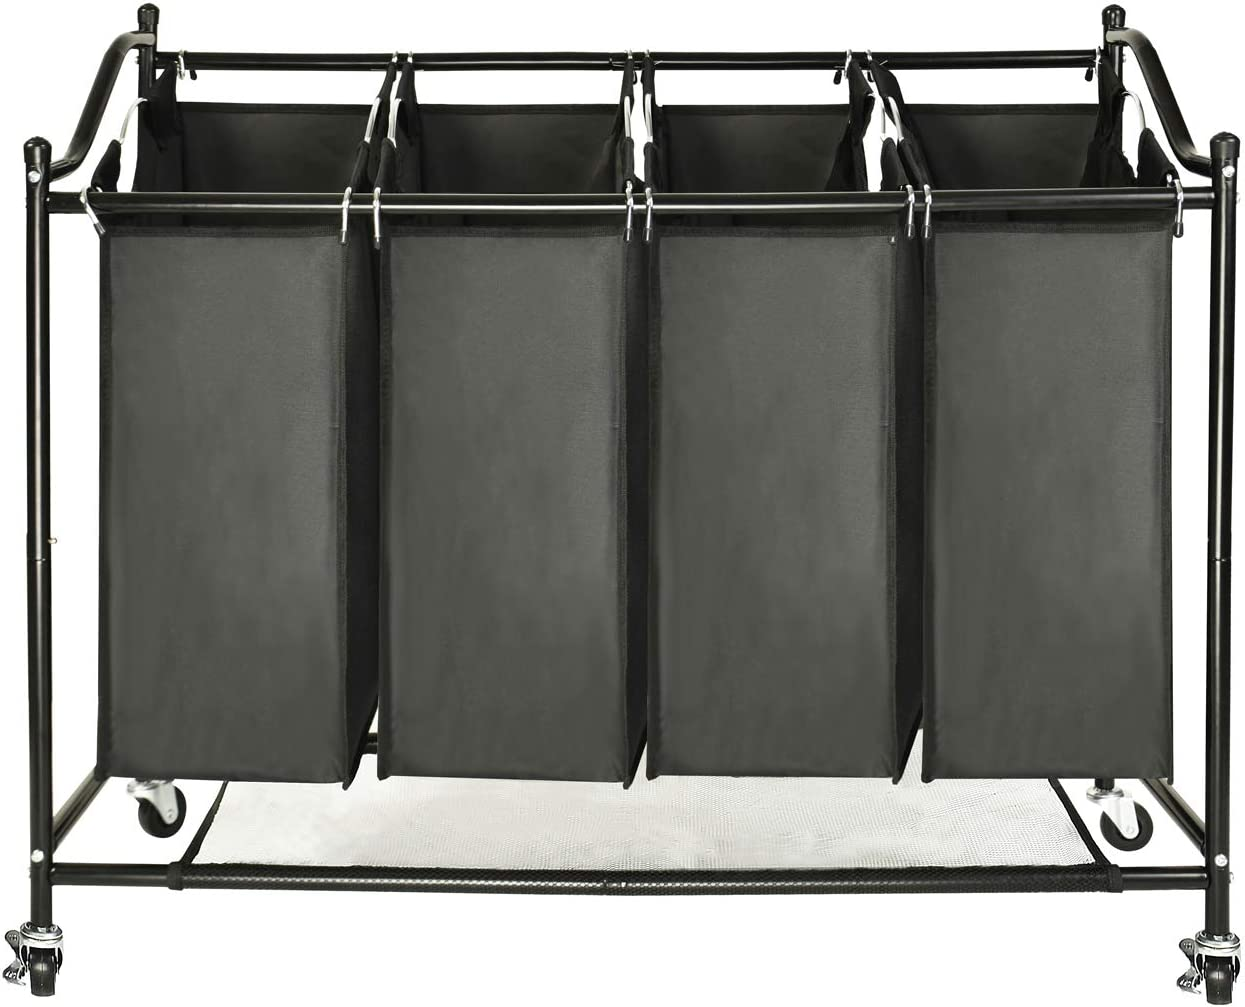 GOJOOASIS 4-Bag Laundry Sorter Rolling Storage Cart with Wheels Black Laundry Hamper